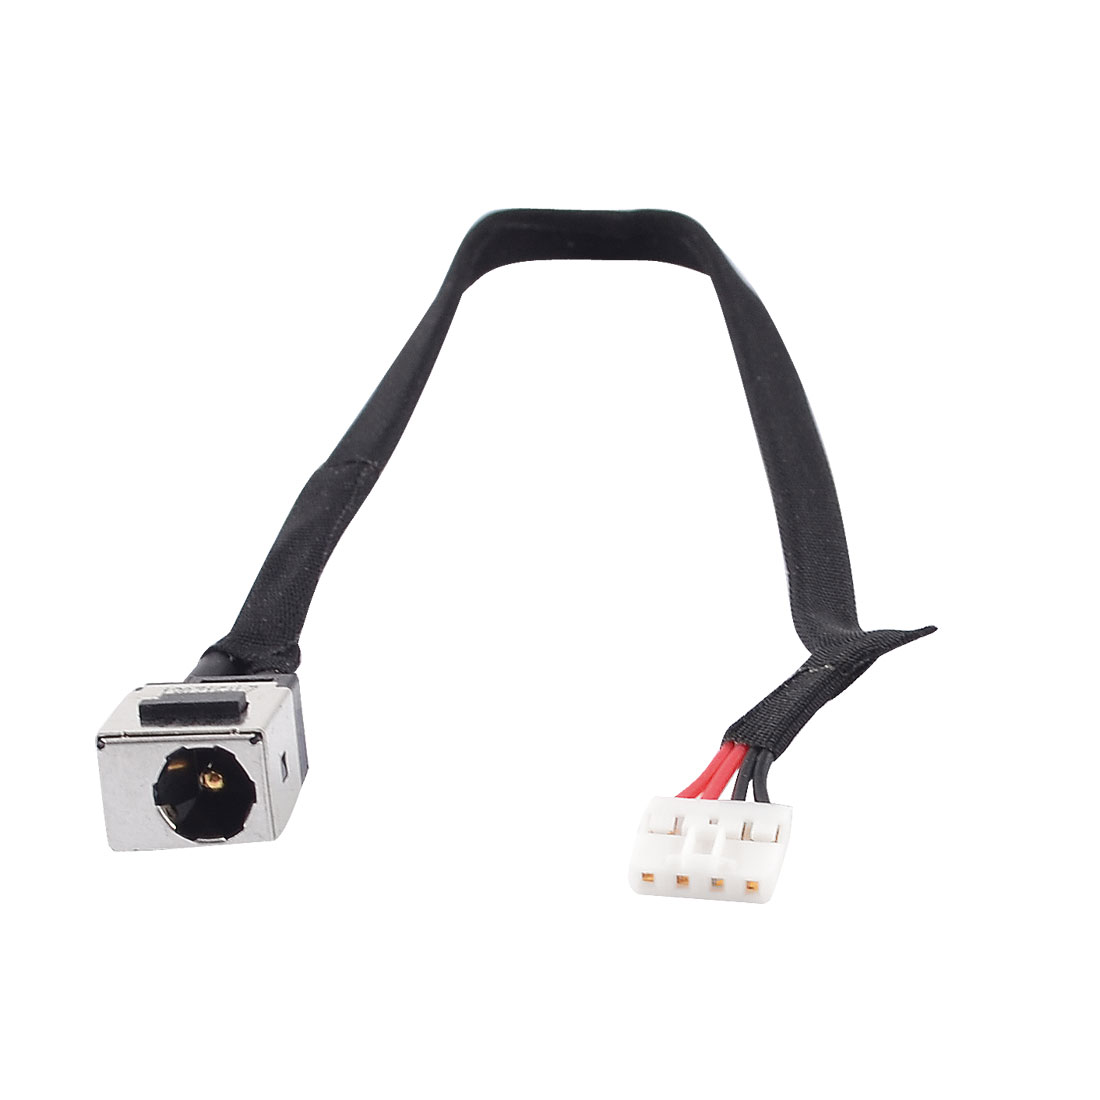 PJ133 DC Jack Power Socket 1.65mm Center Pin w Cable for Acer Notebook